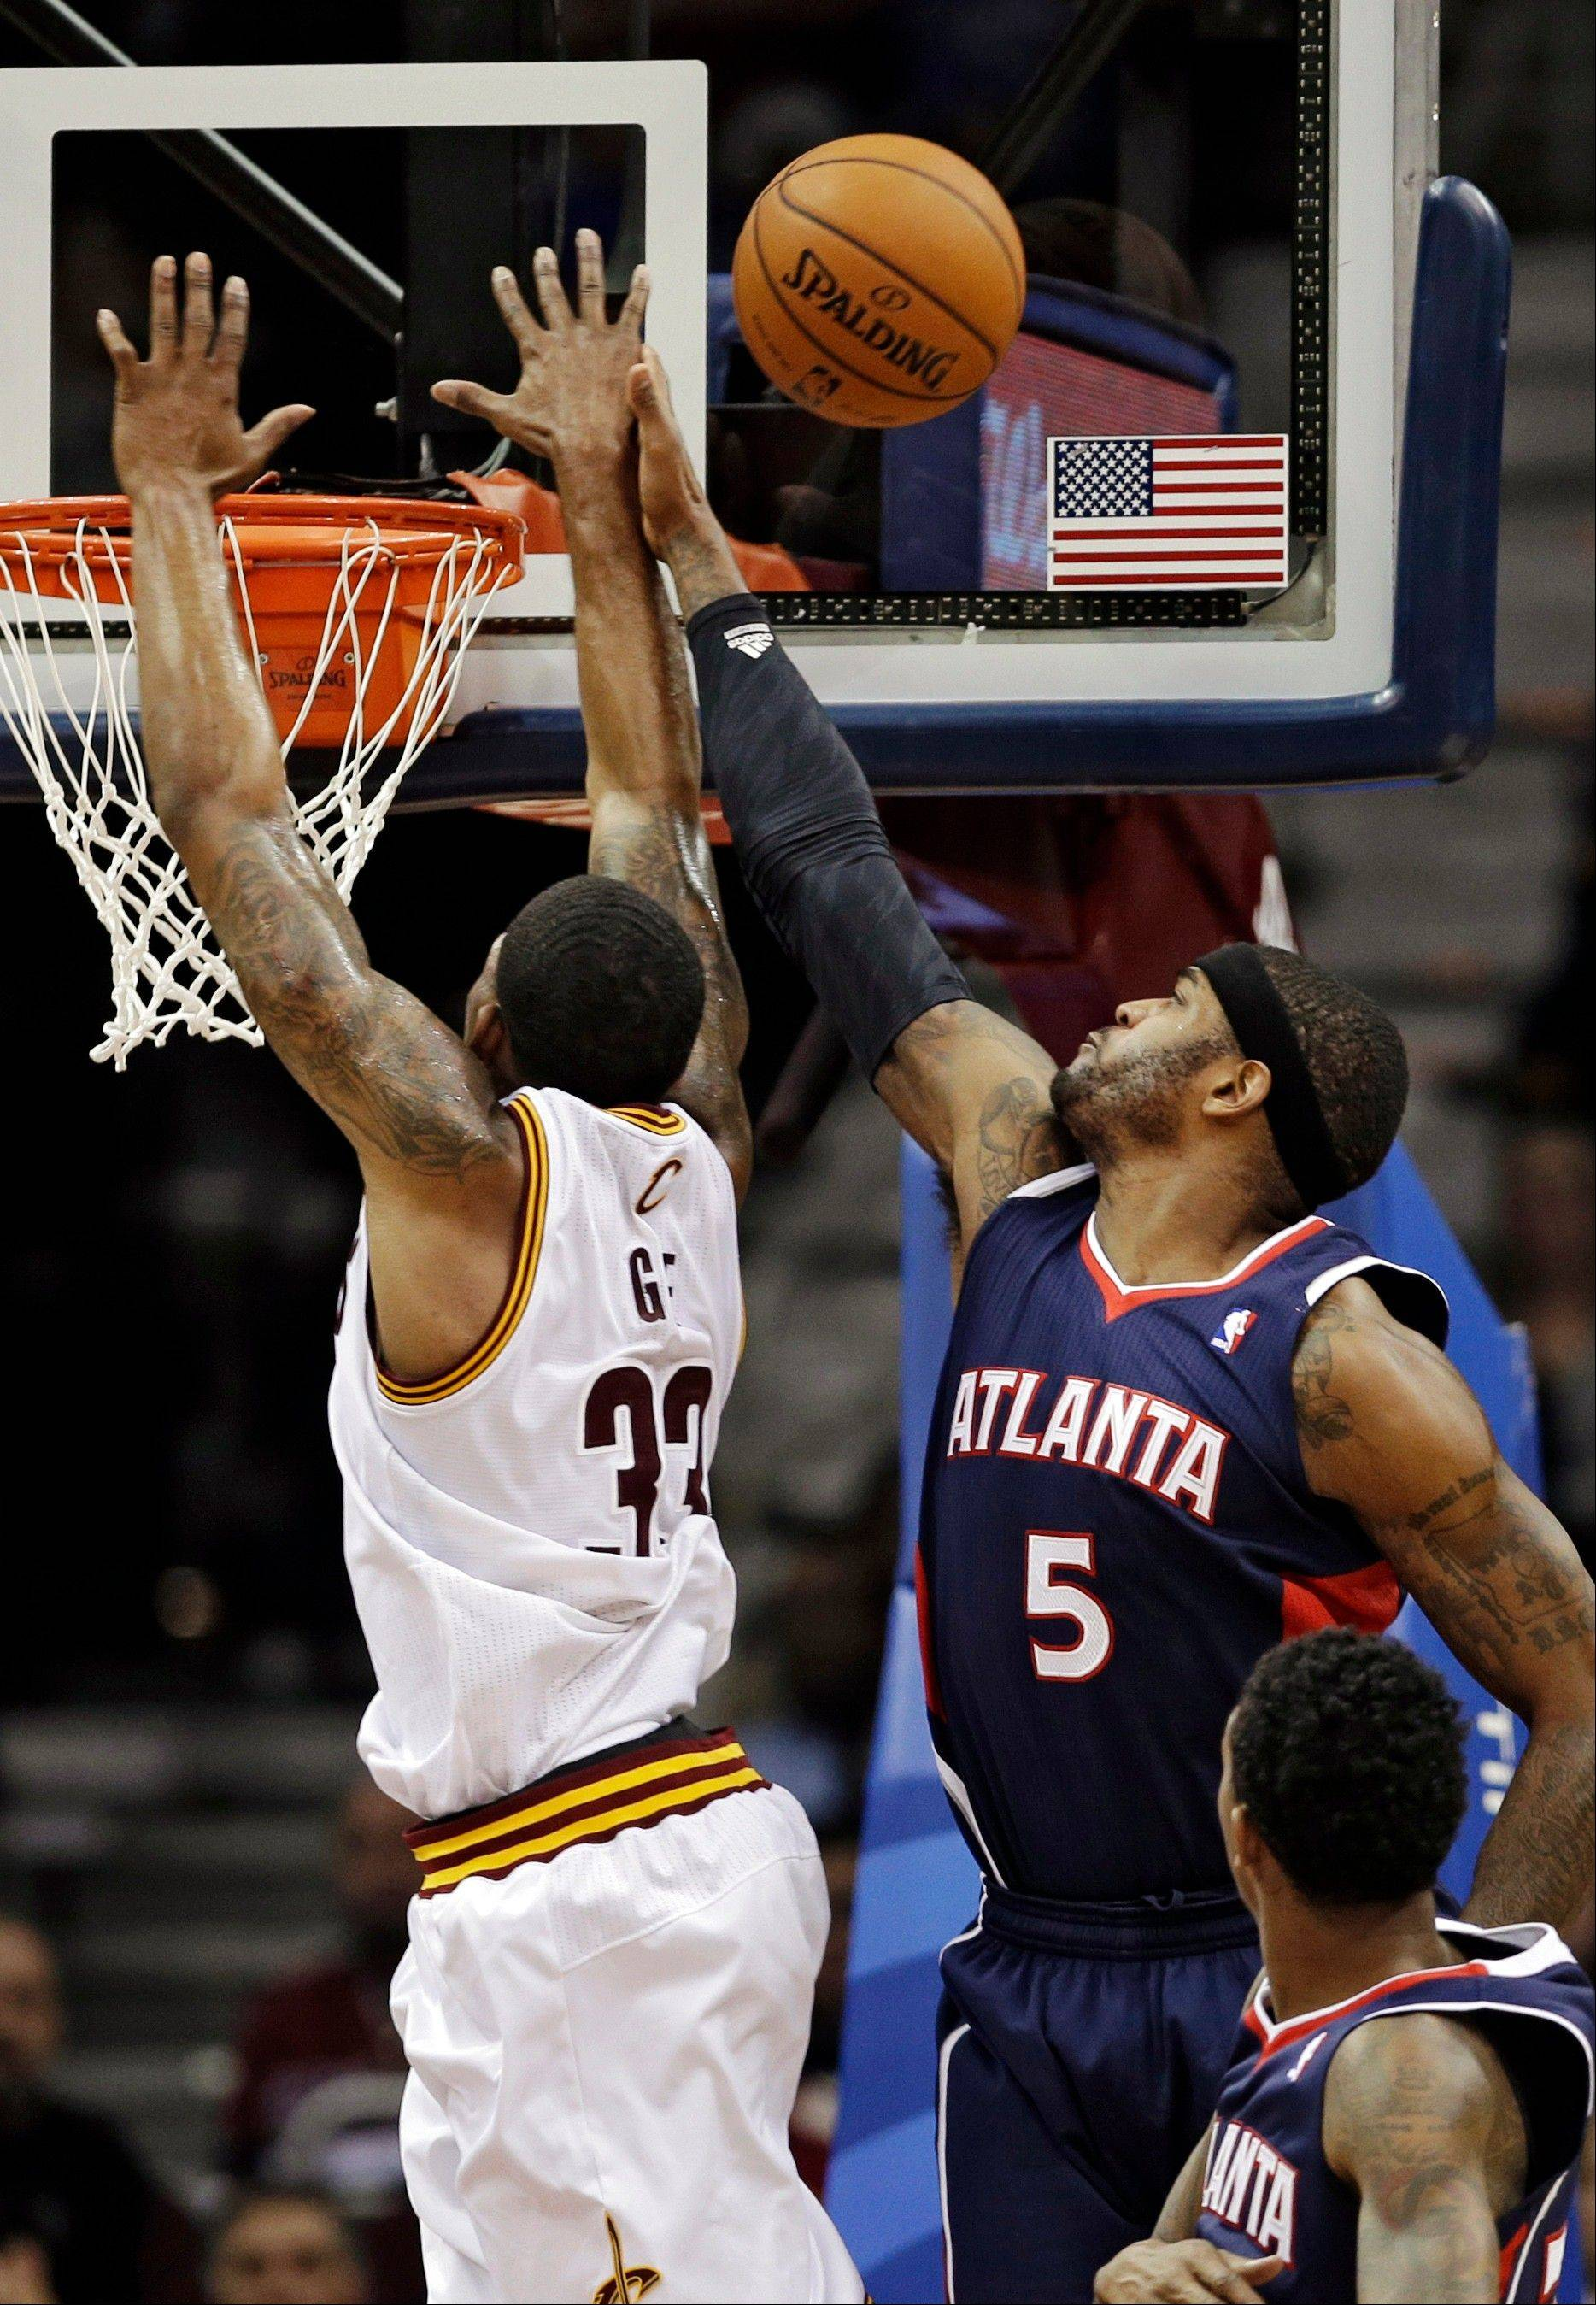 Atlanta Hawks' Josh Smith (5) blocks a shot by Cleveland Cavaliers' Alonzo Gee (33) in the third quarter of an NBA basketball game Wednesday in Cleveland. Smith led the Hawks with 17 points in a 99-83 loss to the Cavaliers.